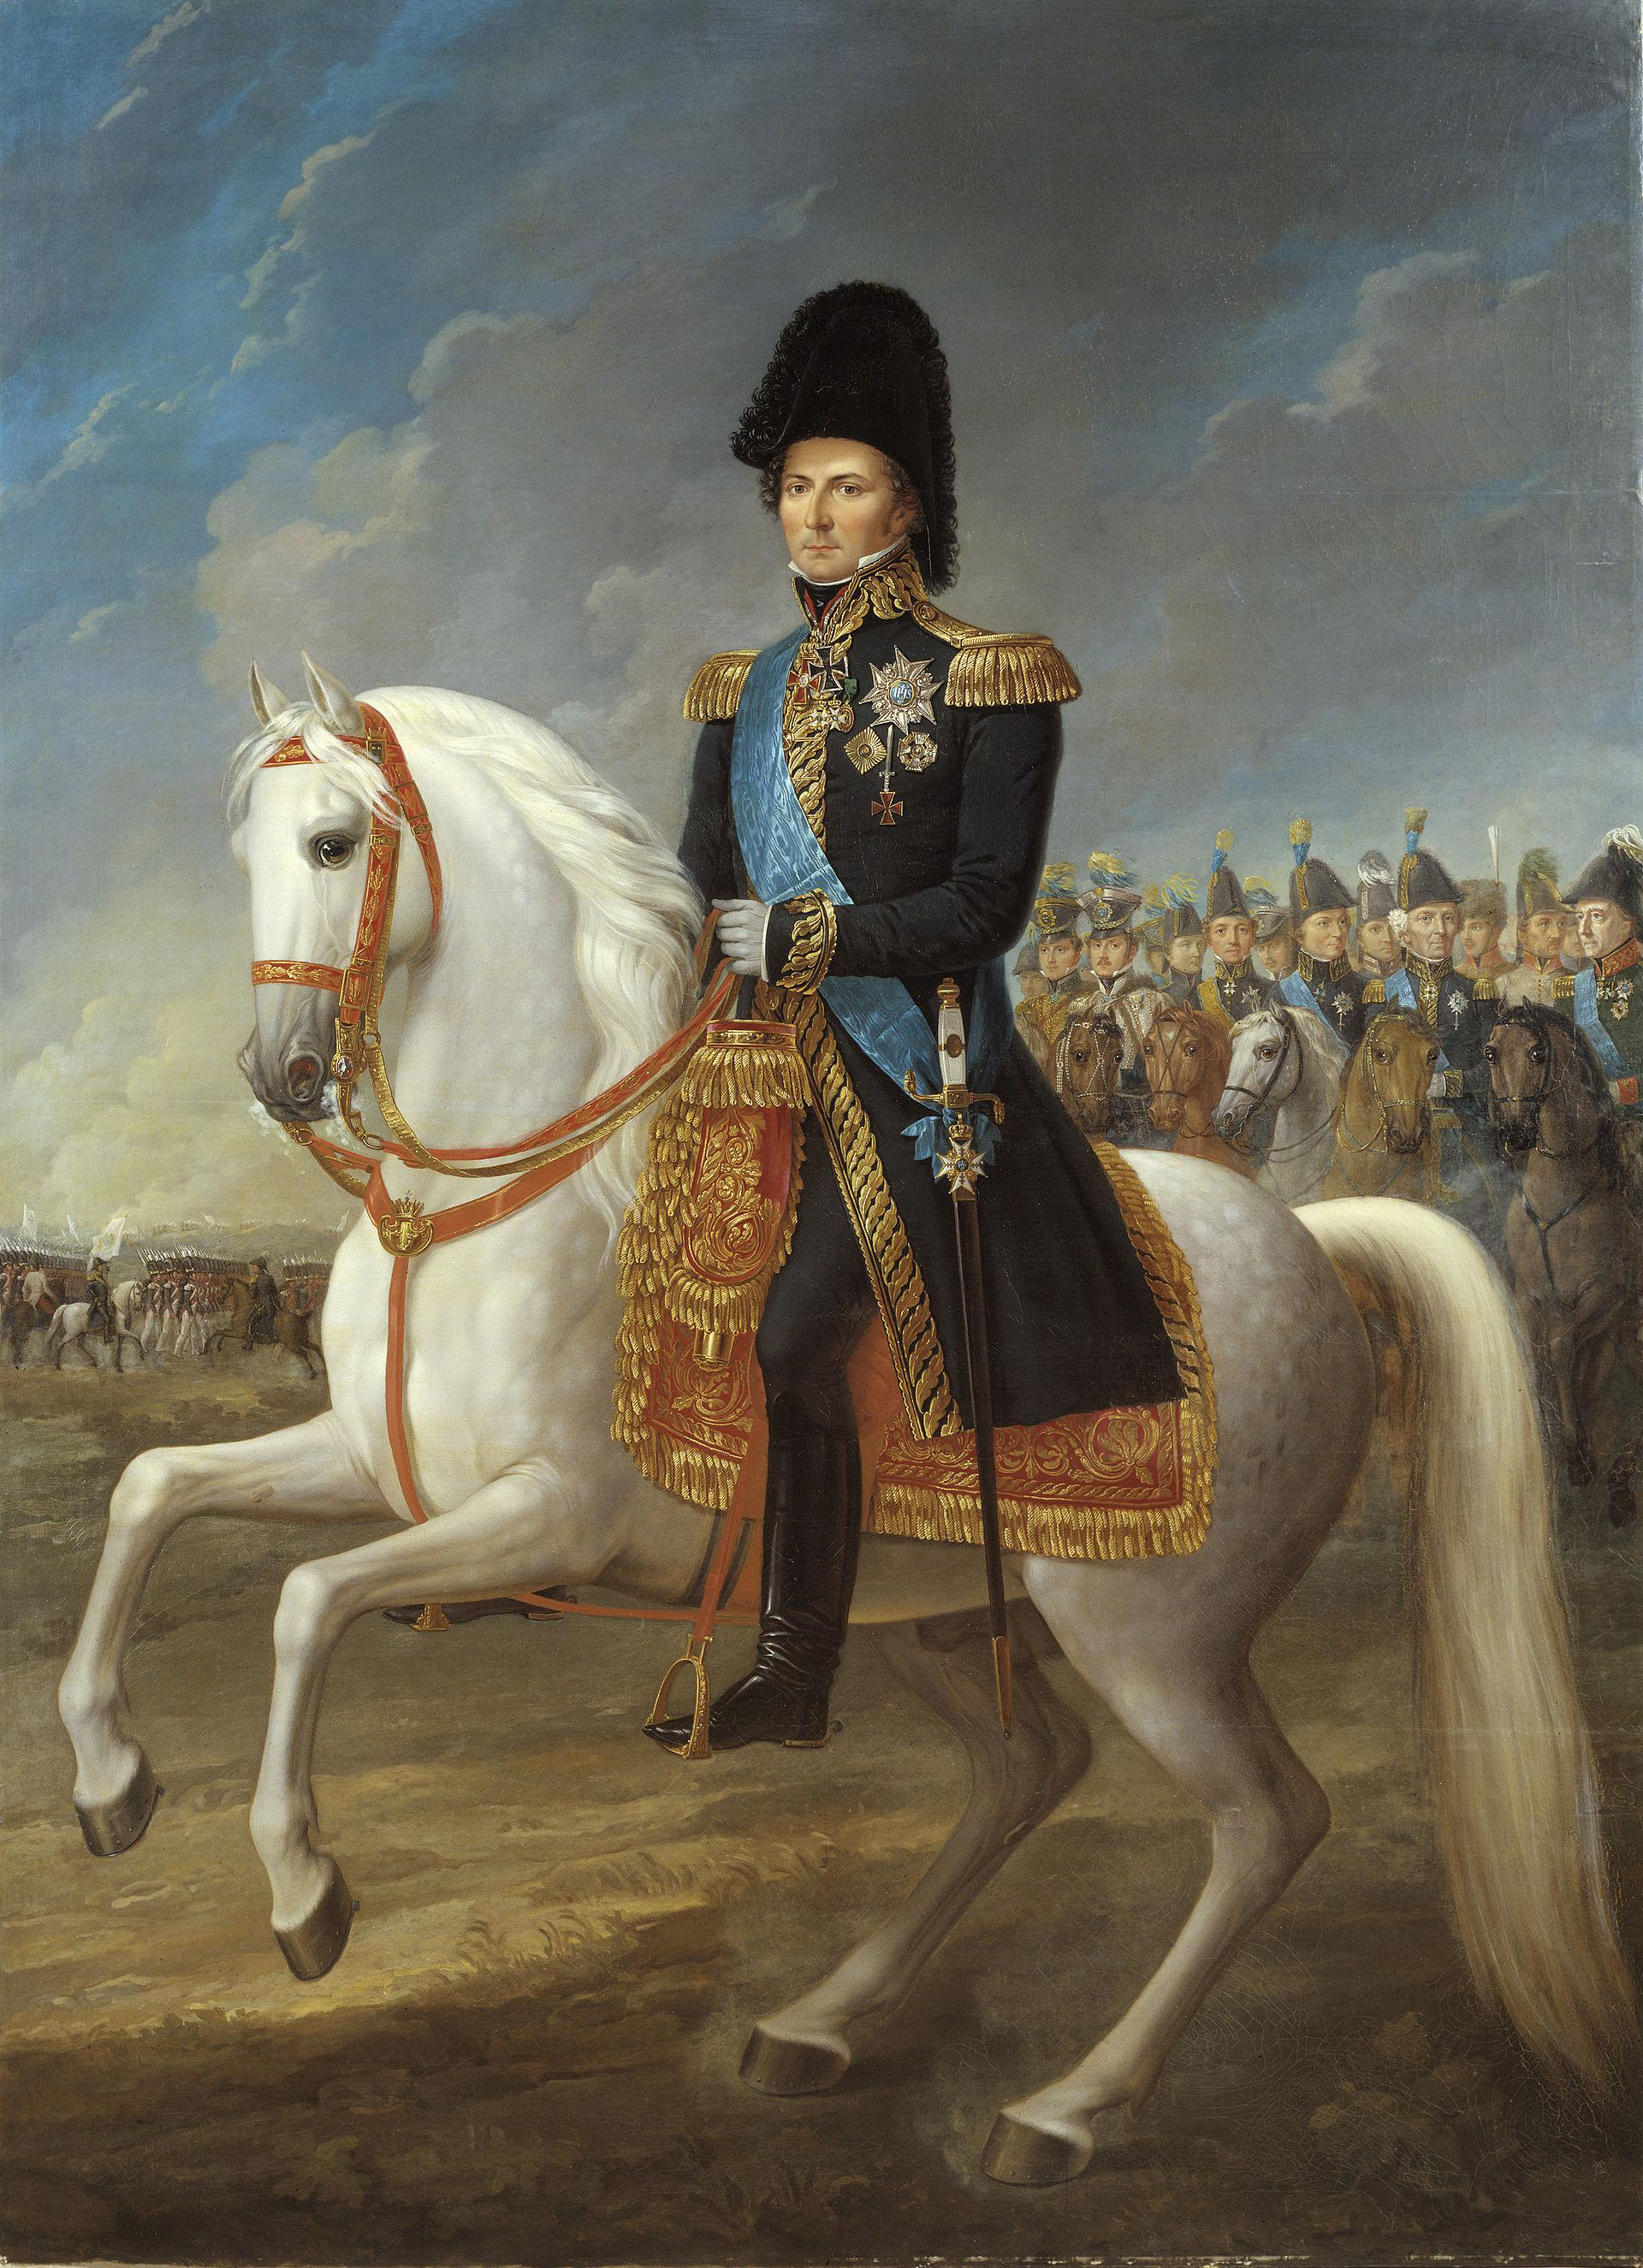 karl_xiv_johan,_king_of_sweden_and_norway,_painted_by_fredric_westin.jpg